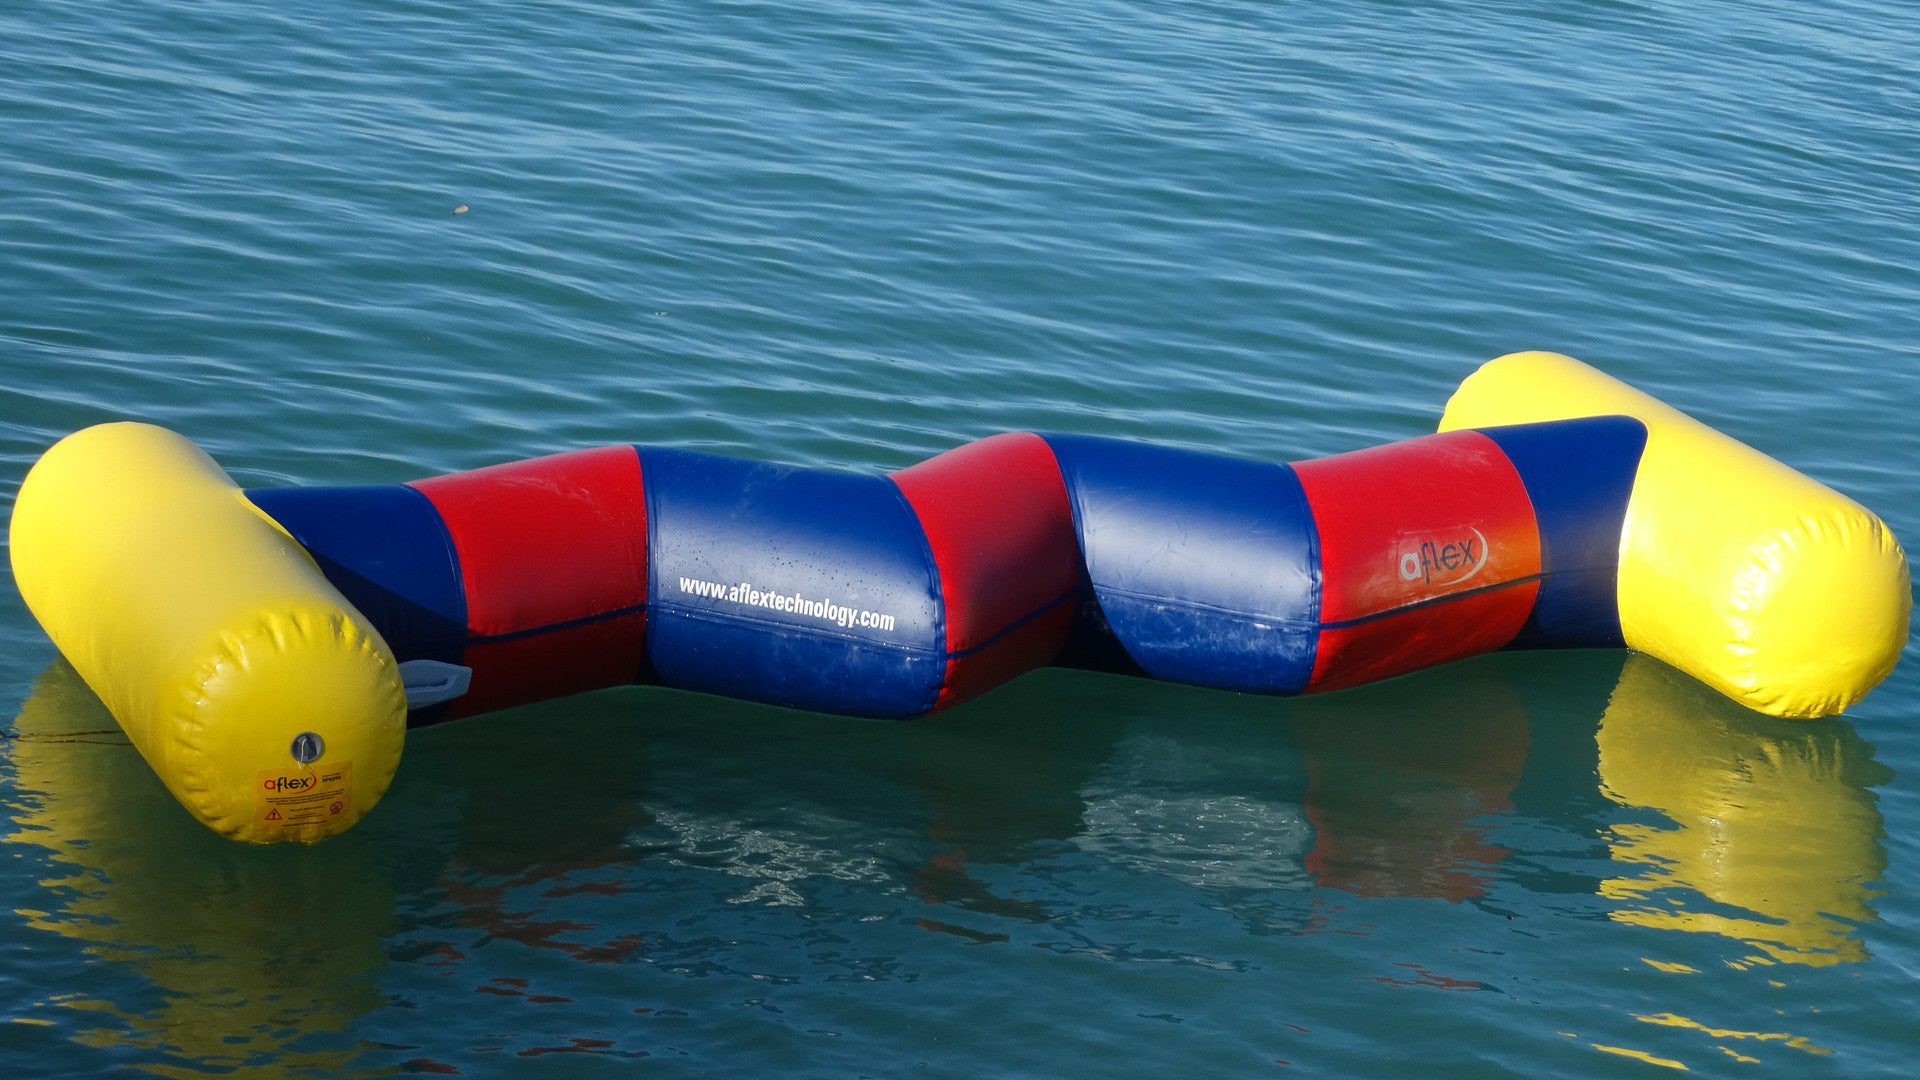 Open Water Inflatable Aqua Park Zig Zag - Aflex Technology - Aqua Adventure Series